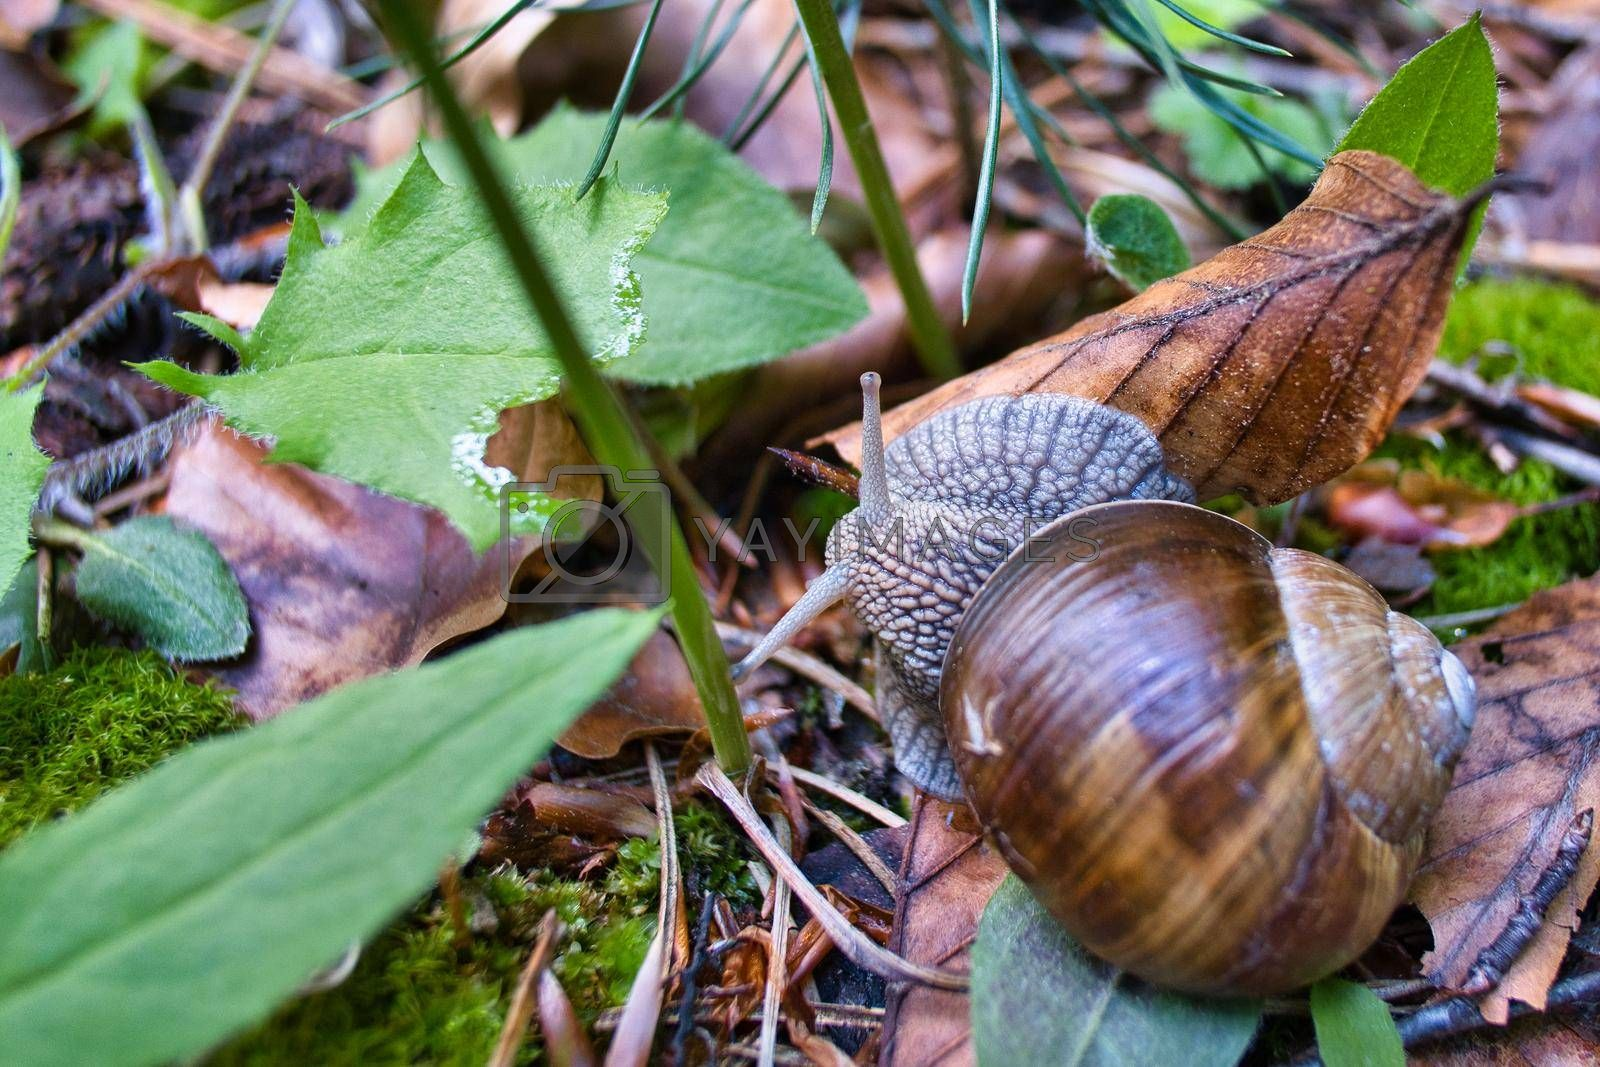 Burgundy roman snail in the forest